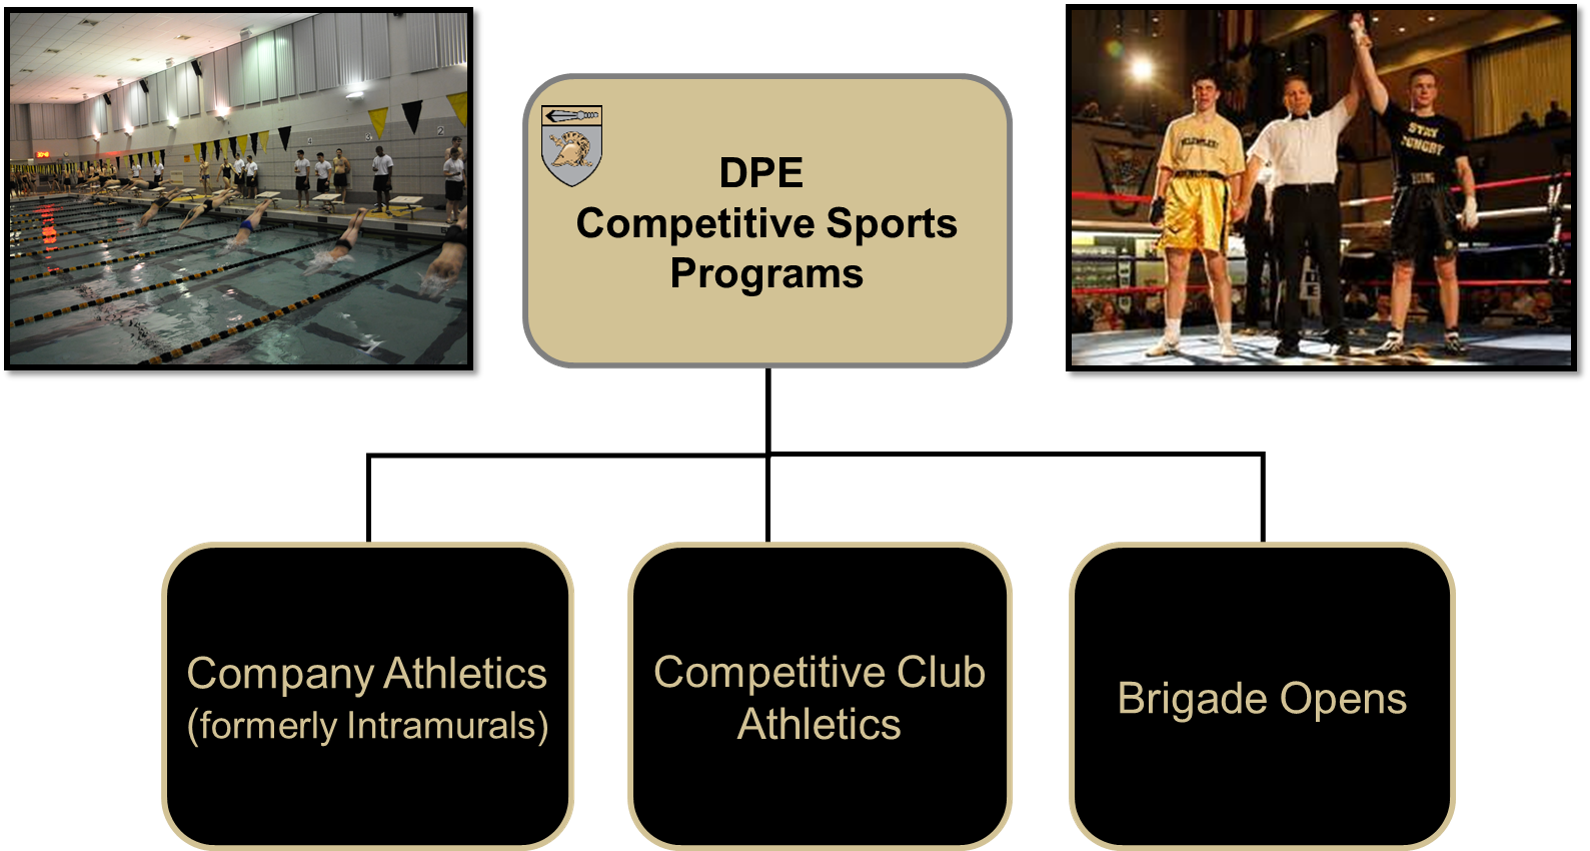 Competitive Sports Program